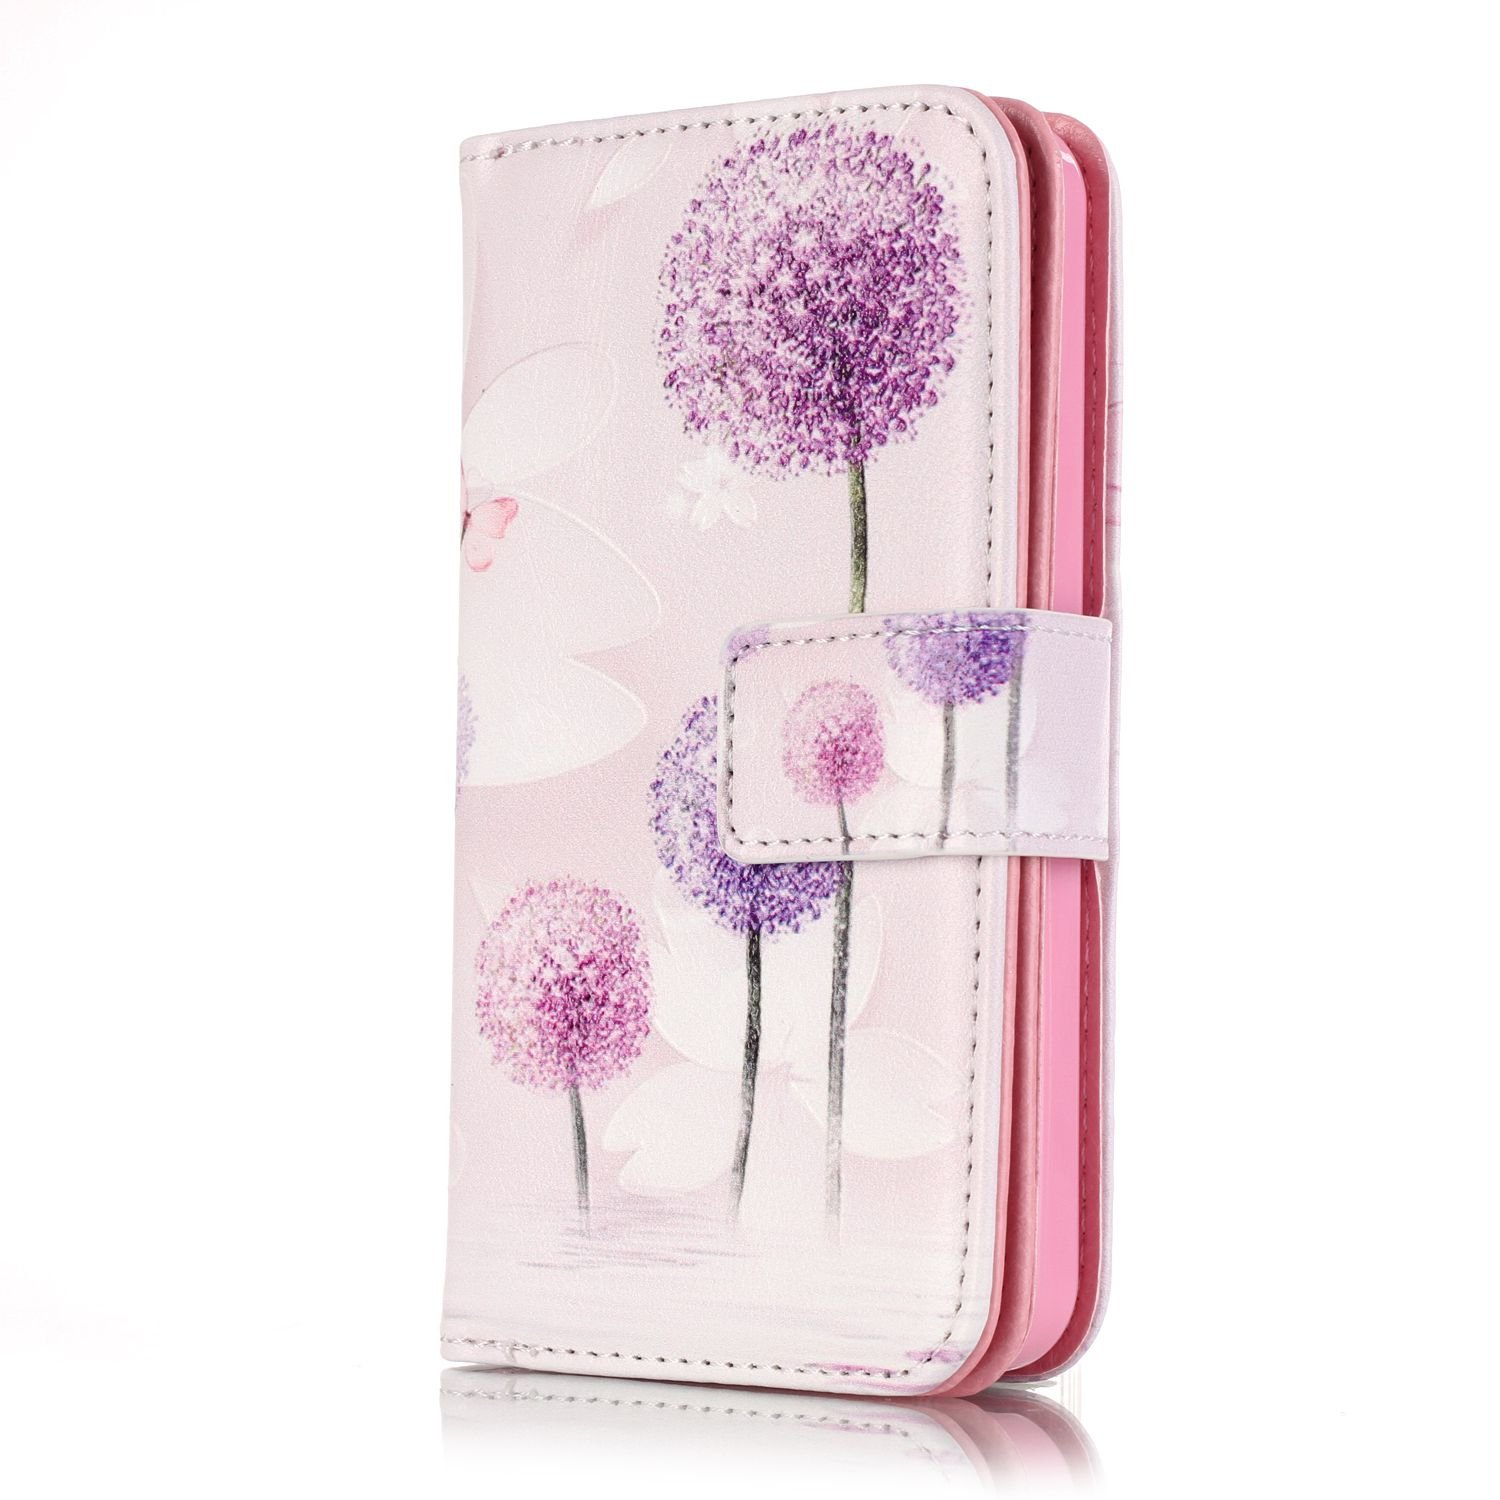 JuSha for Apply to Apple iPhone 5 / 5S / SE Edge Case PU Leather Wallet Magnetic Cover Skin(Dandelion mobile phone case)